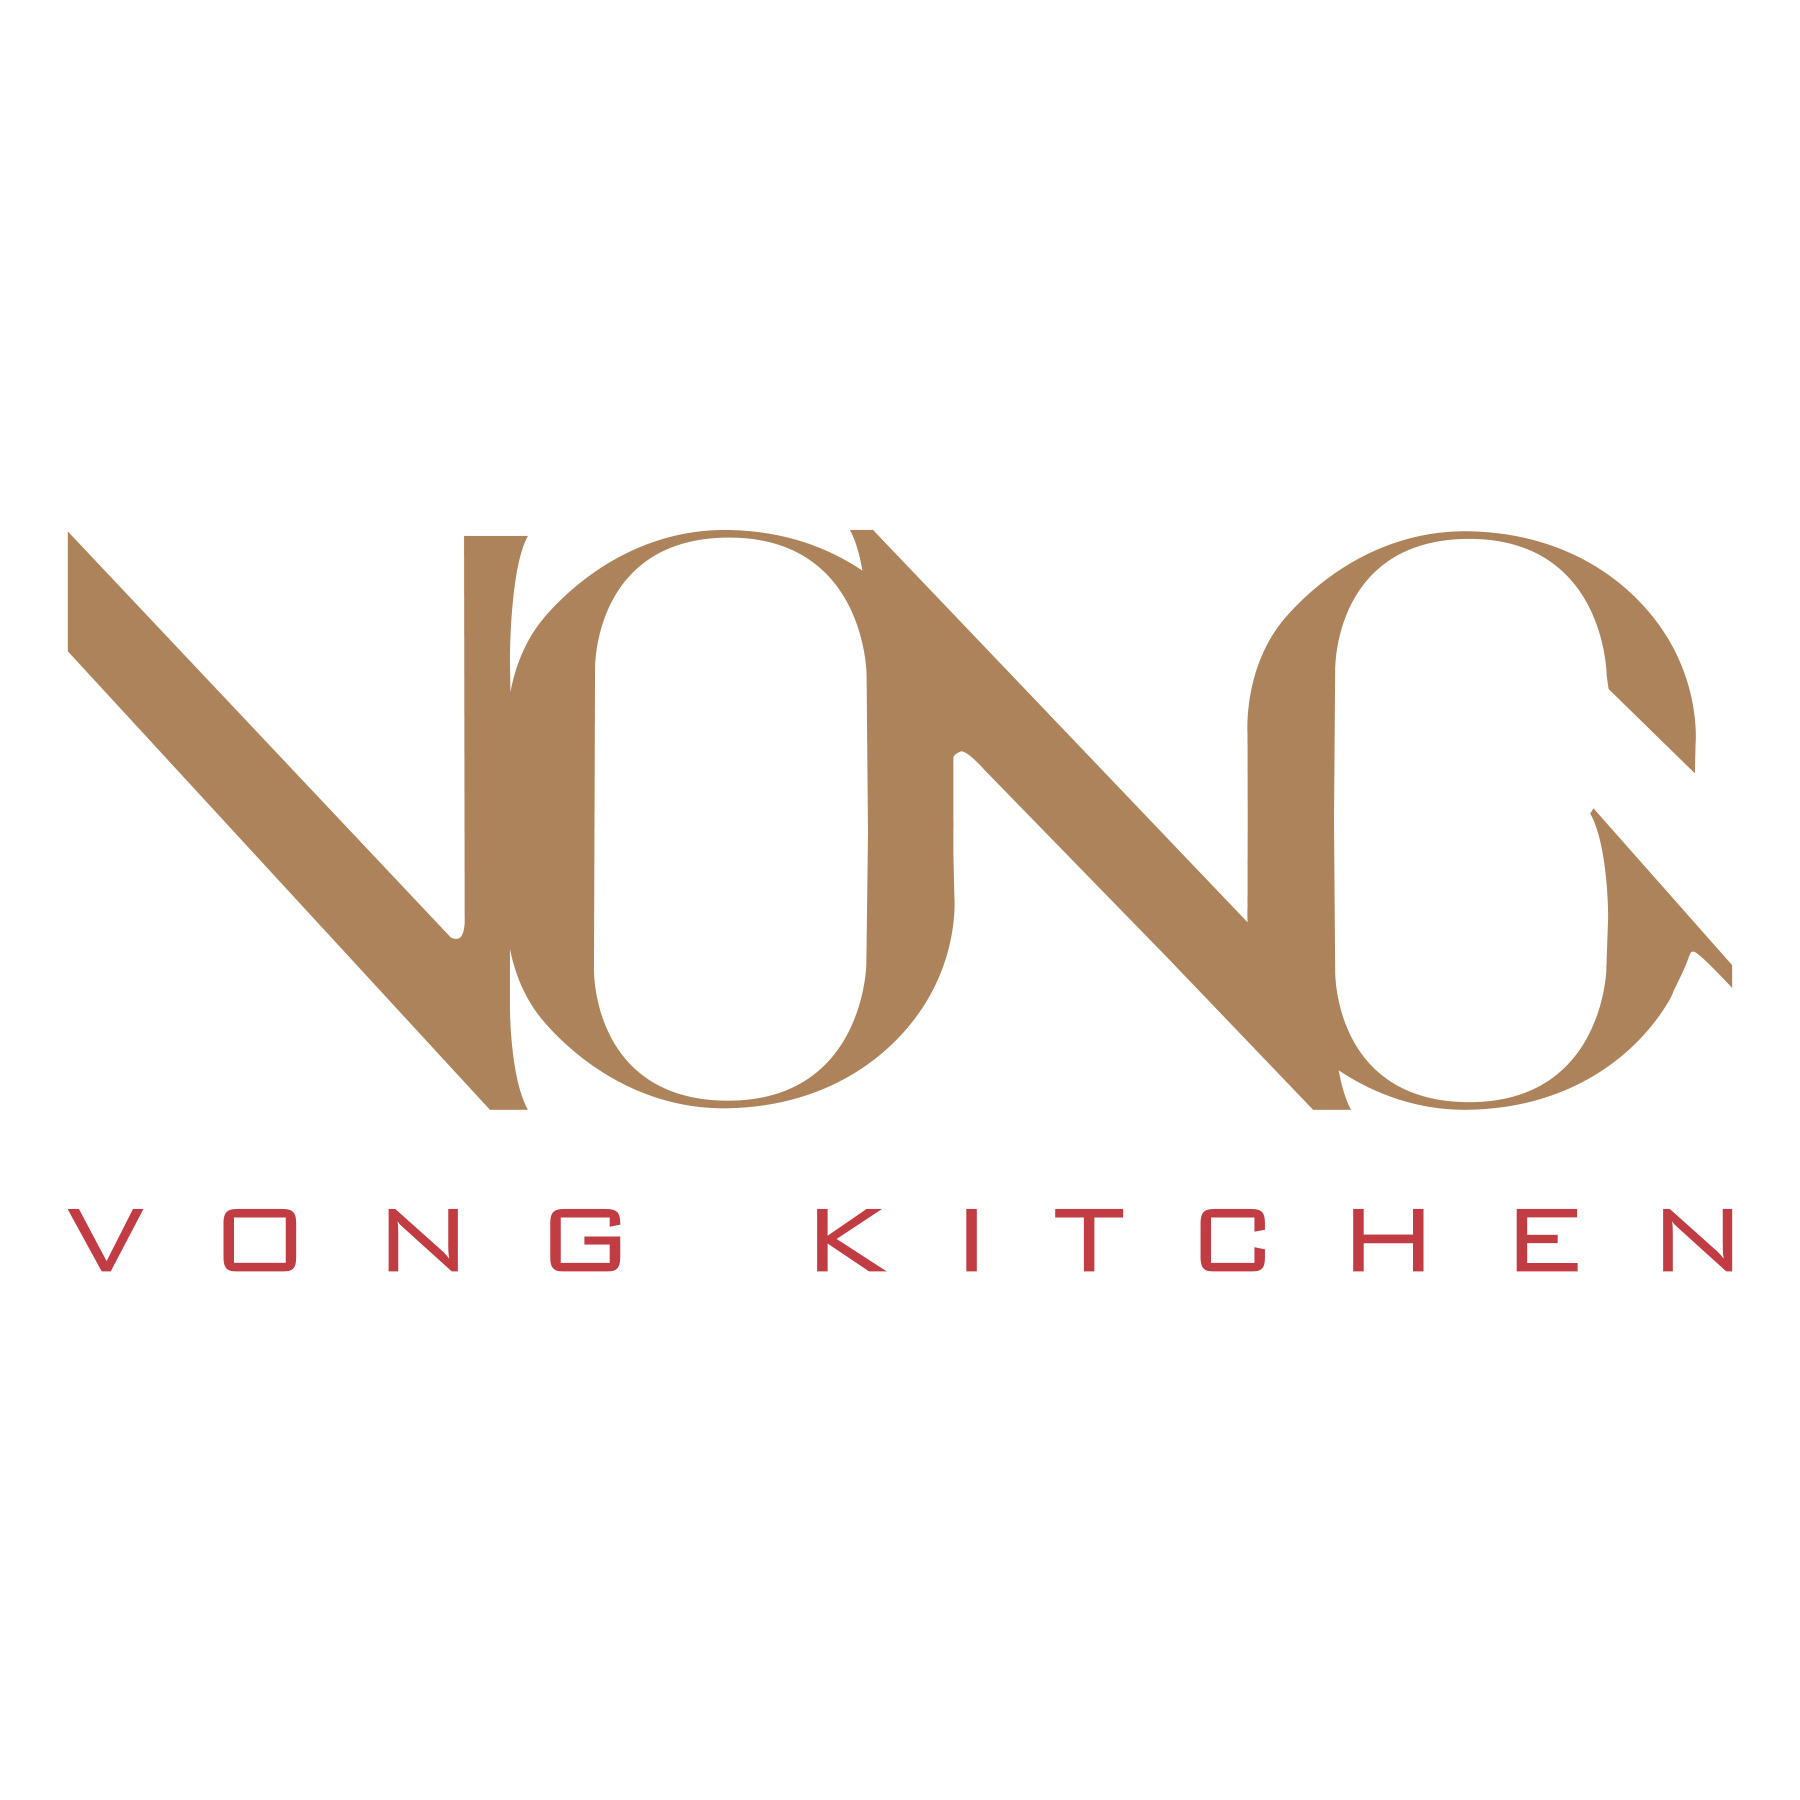 Vong Kitchen - Book restaurant now with ResDiary